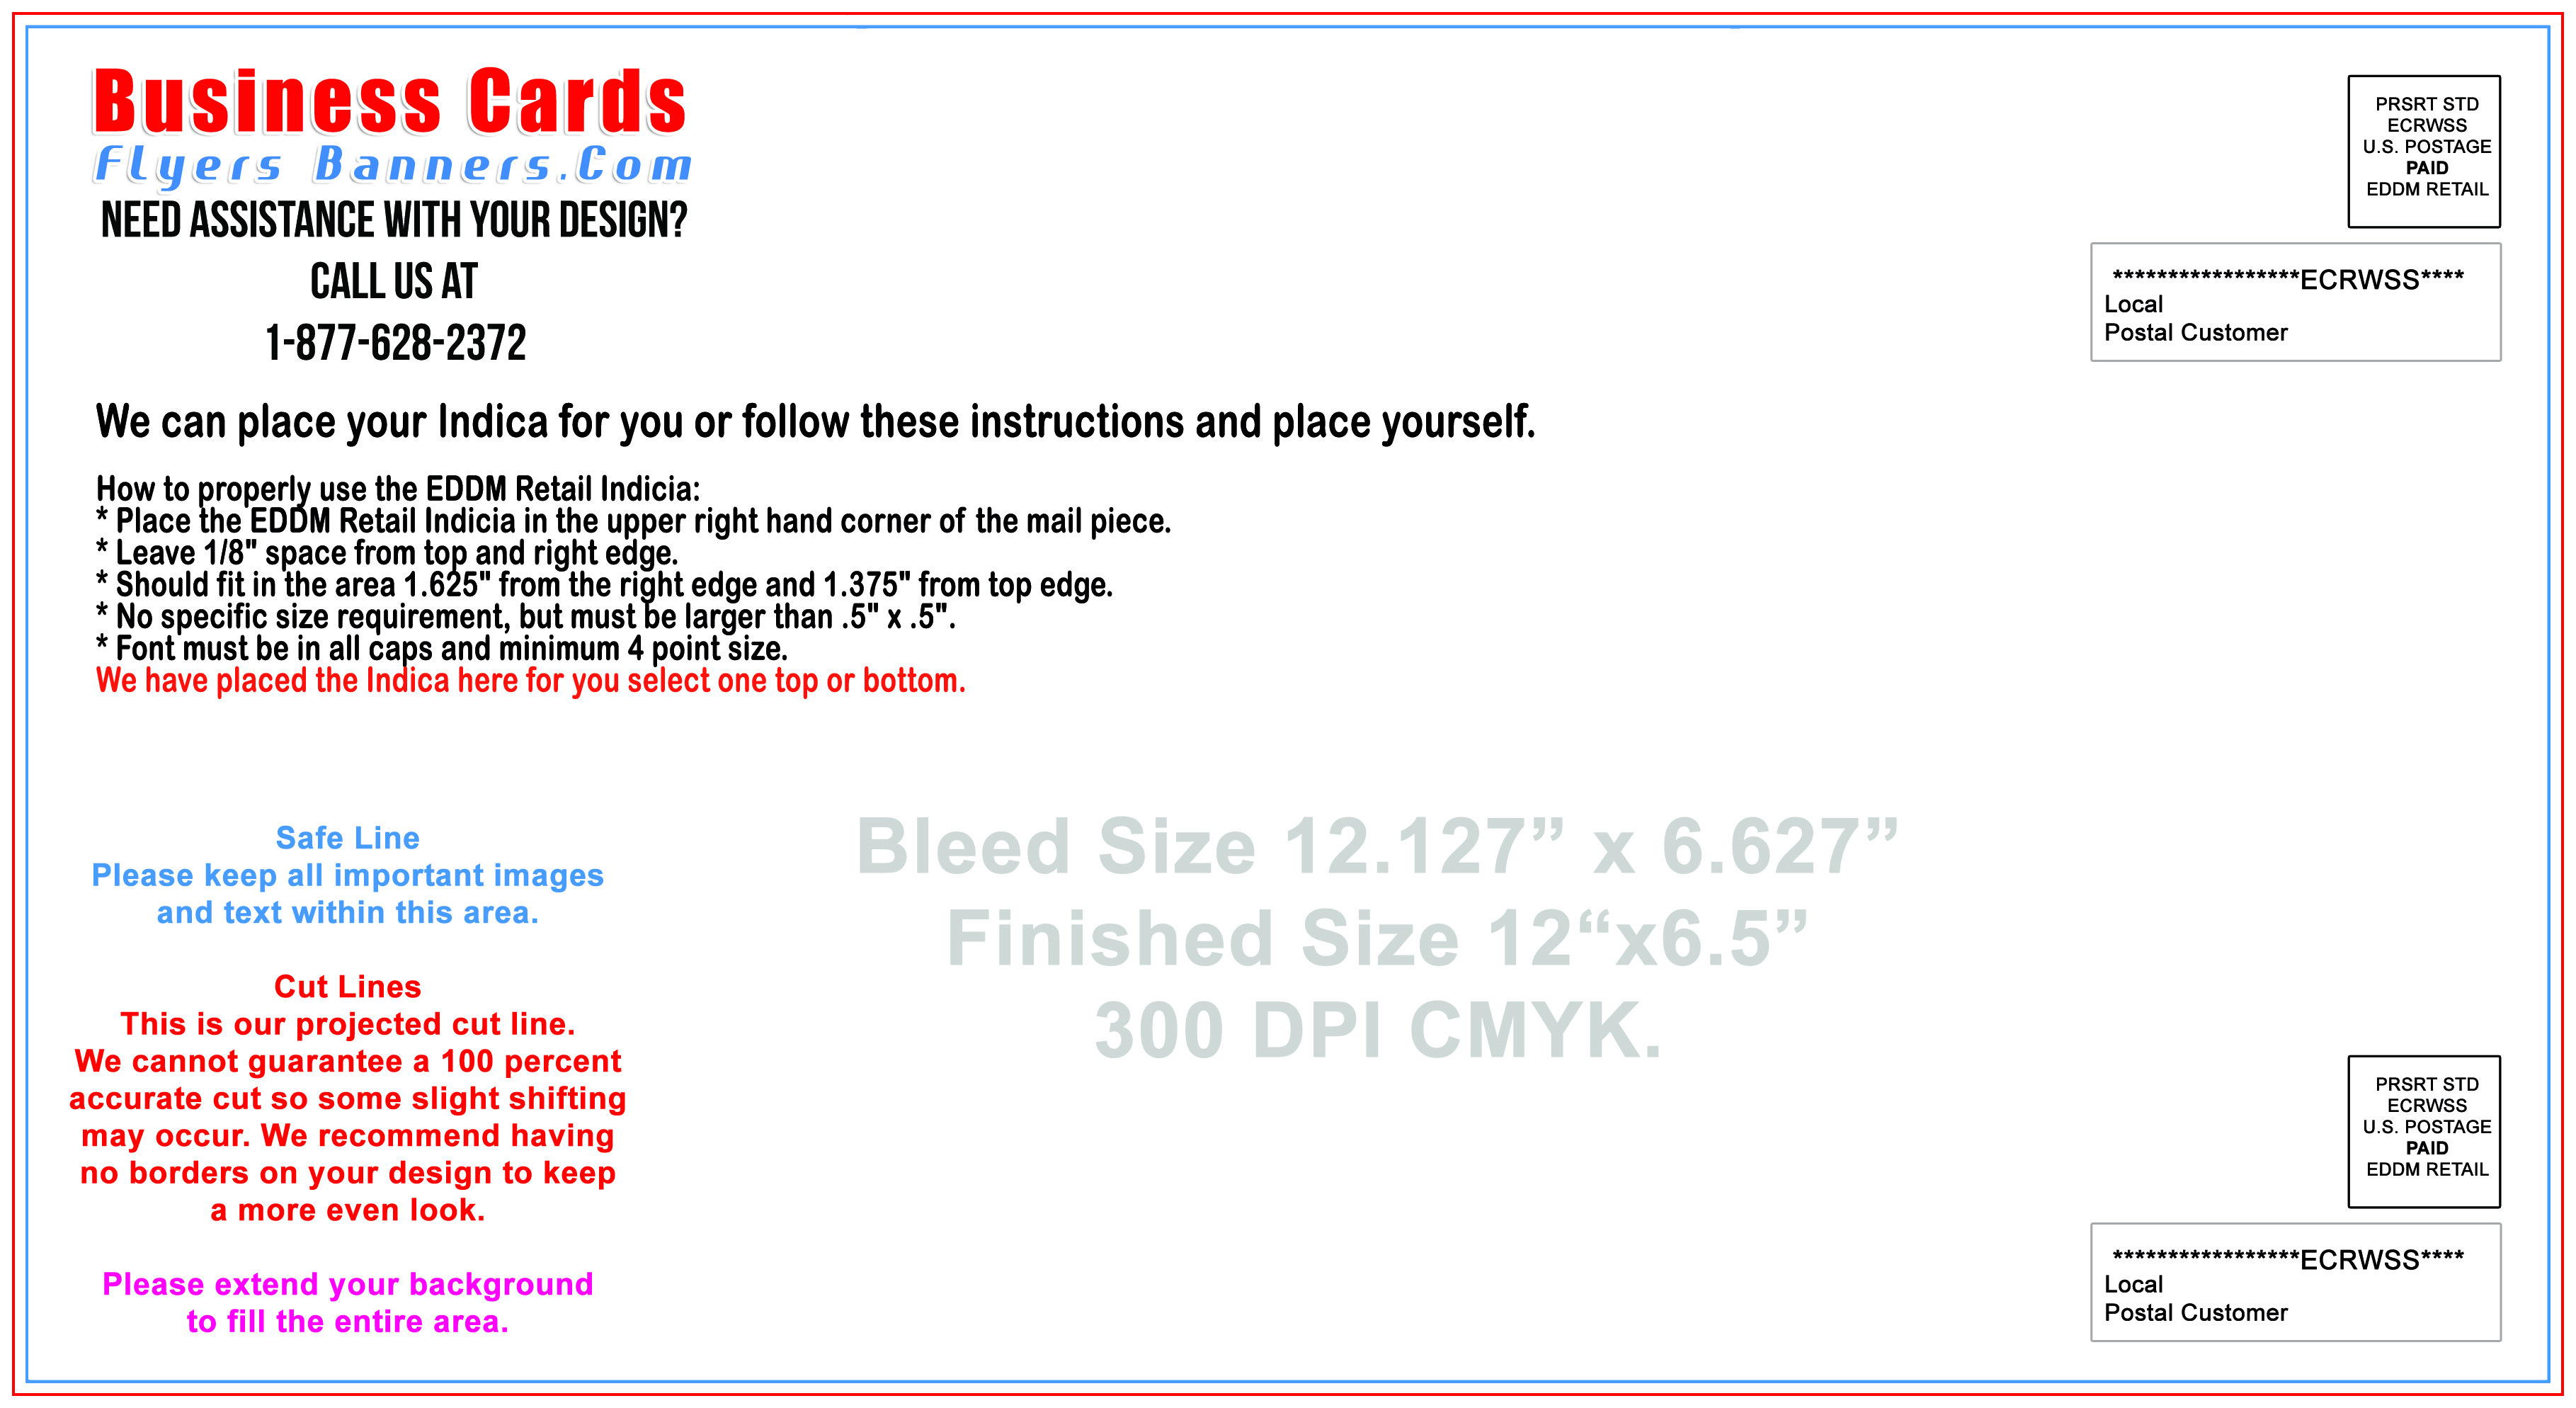 EDDM postcard Templates - Free Shipping and Low Prices